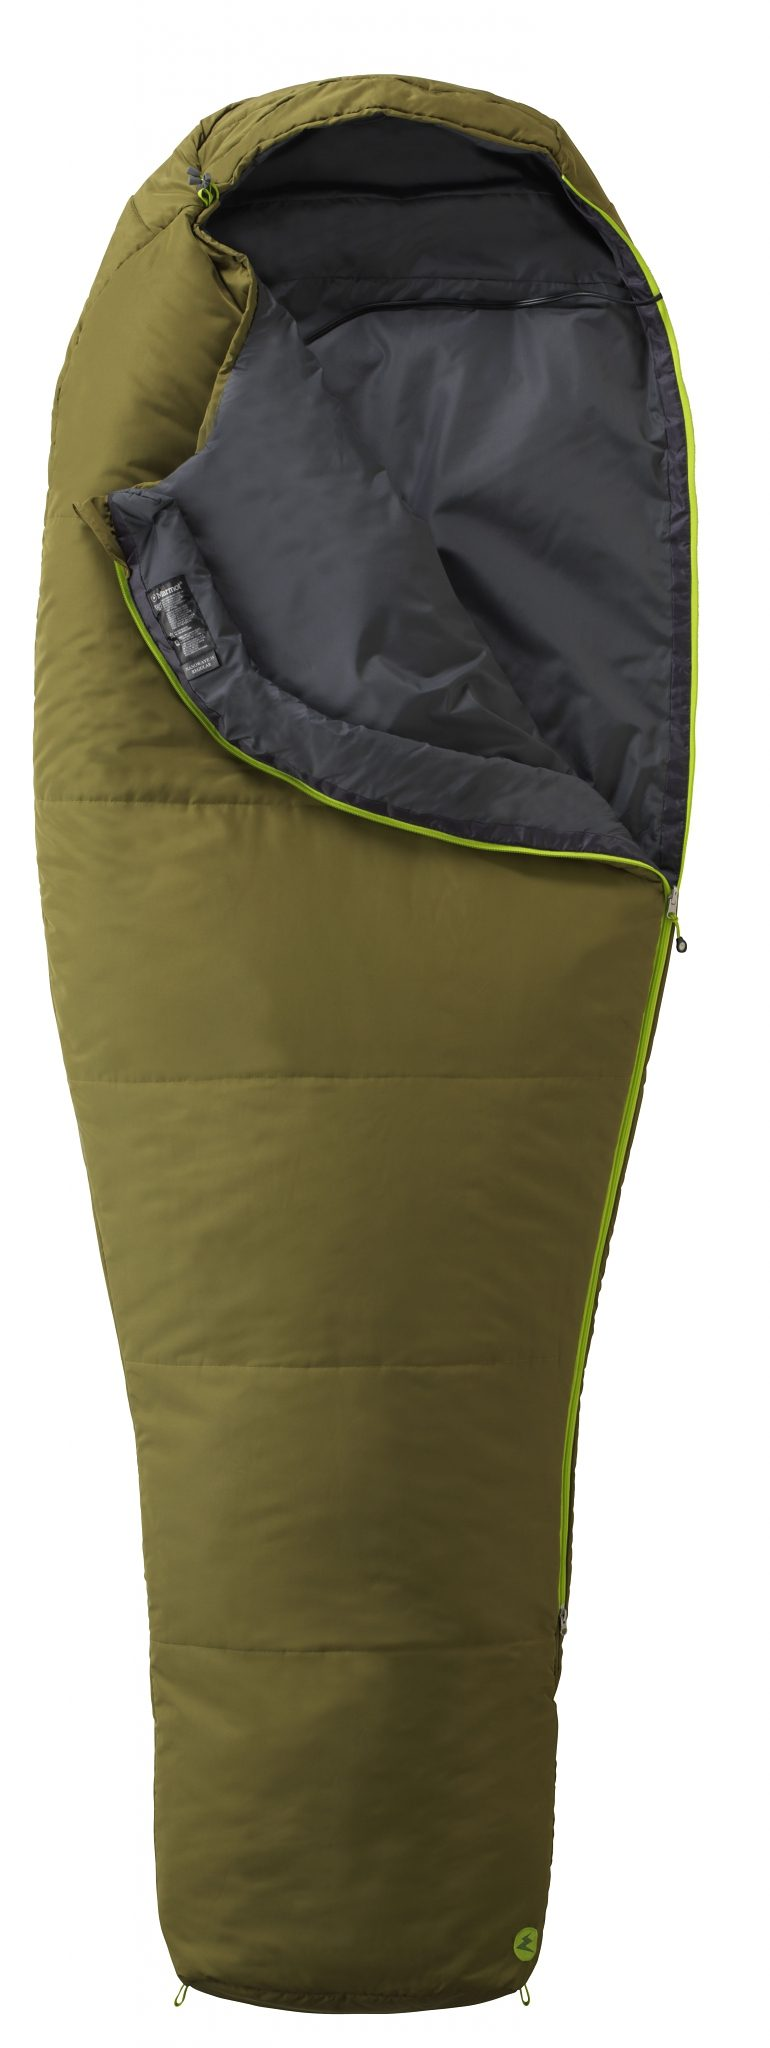 Marmot Schlafsack »NanoWave 35 Sleeping Bag Regular«